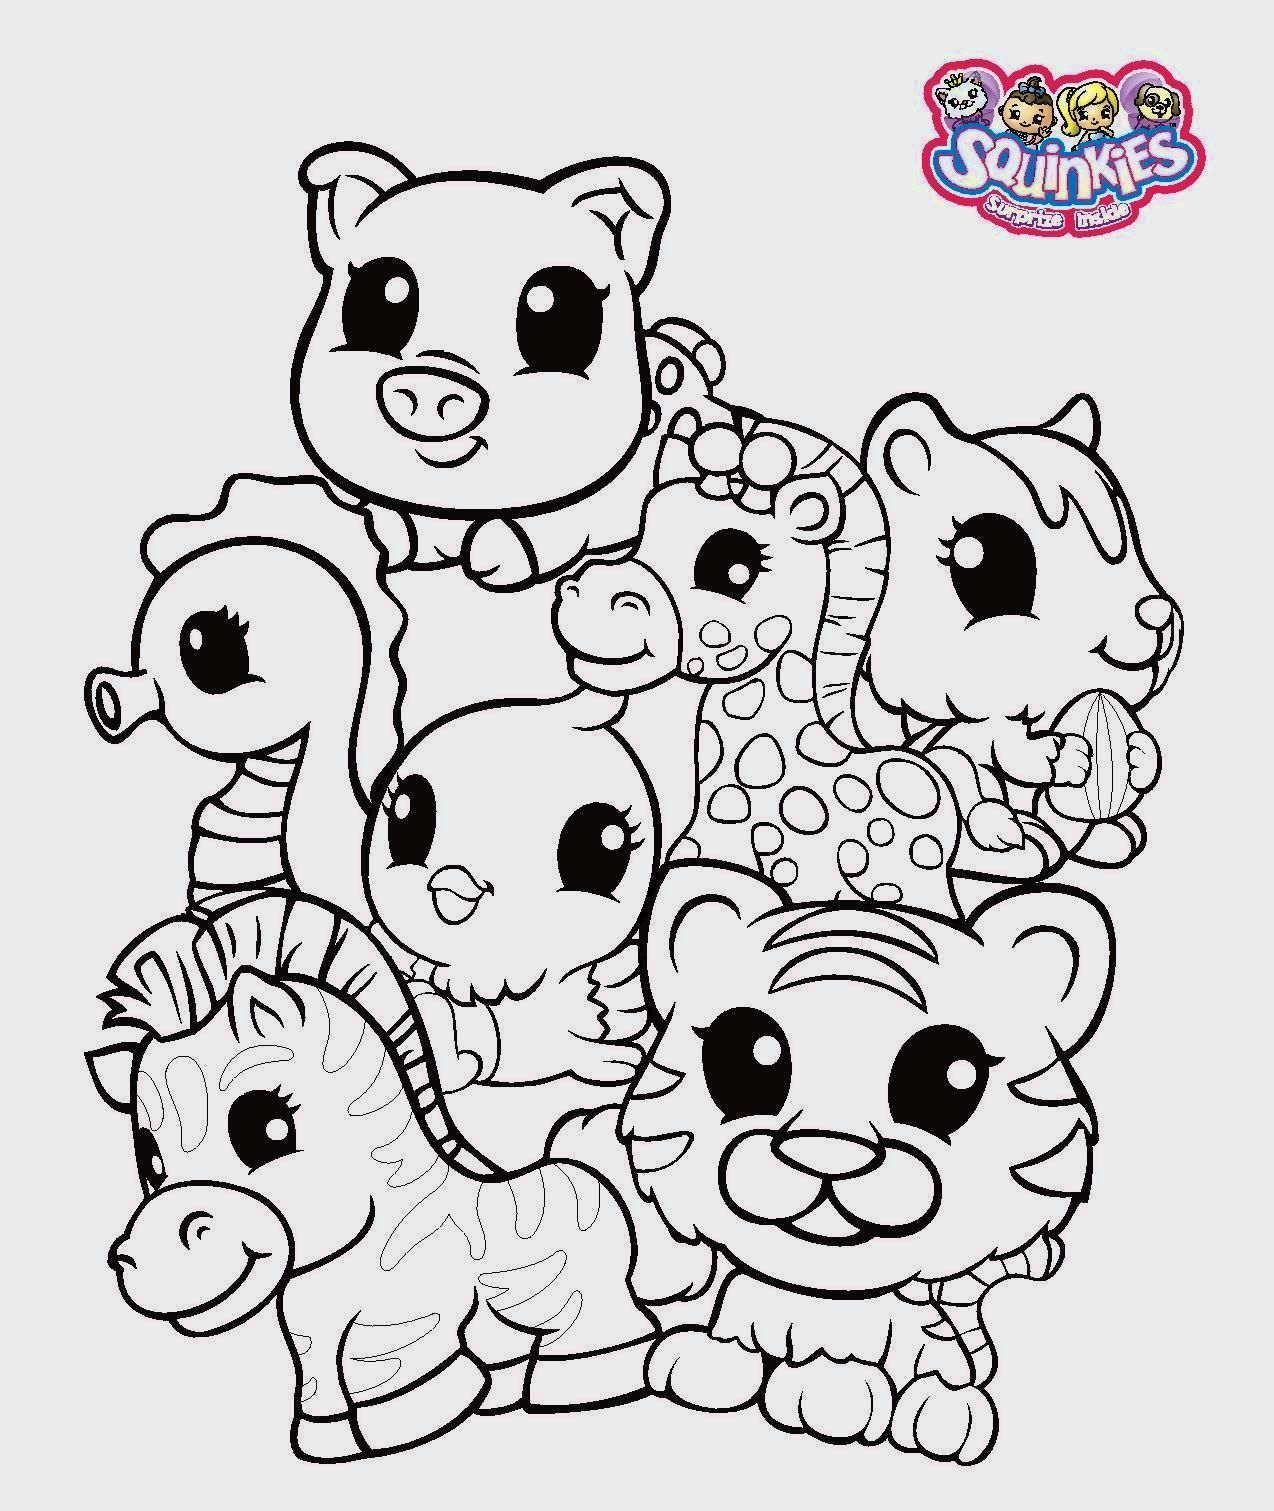 Squinkies Coloring Pages | Coloring Pages | Pinterest